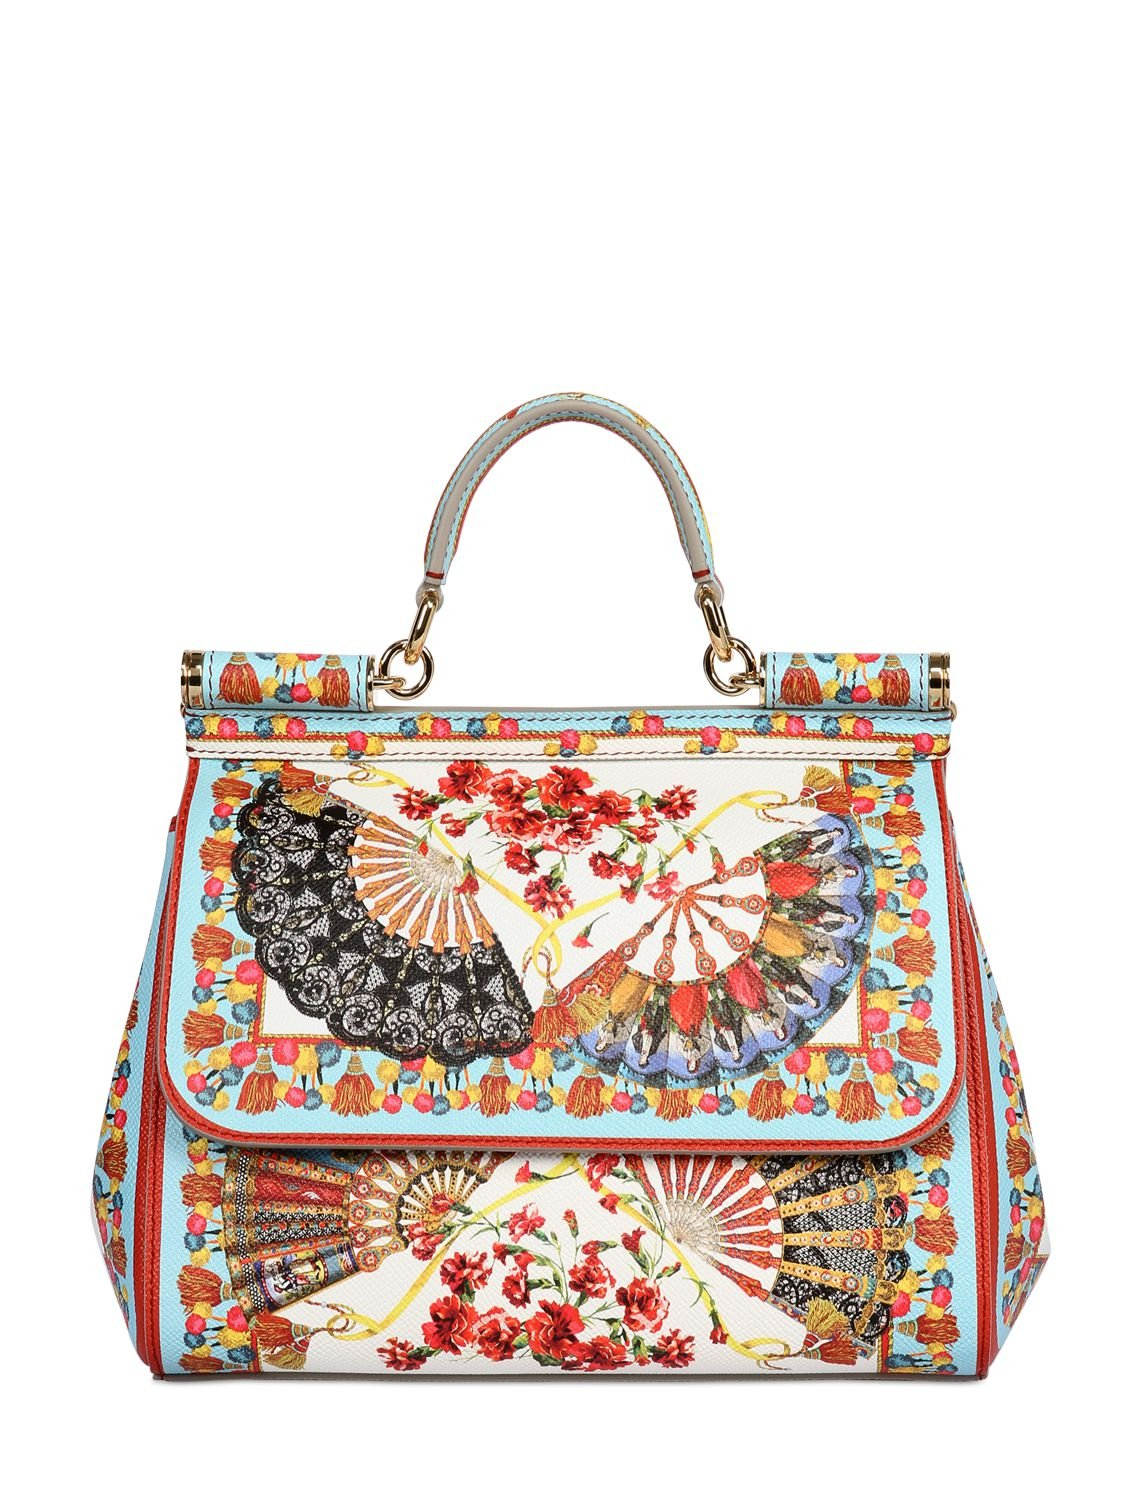 afeb903739 Gallery. Previously sold at  LUISA VIA ROMA · Women s Dolce Gabbana Sicily  ...